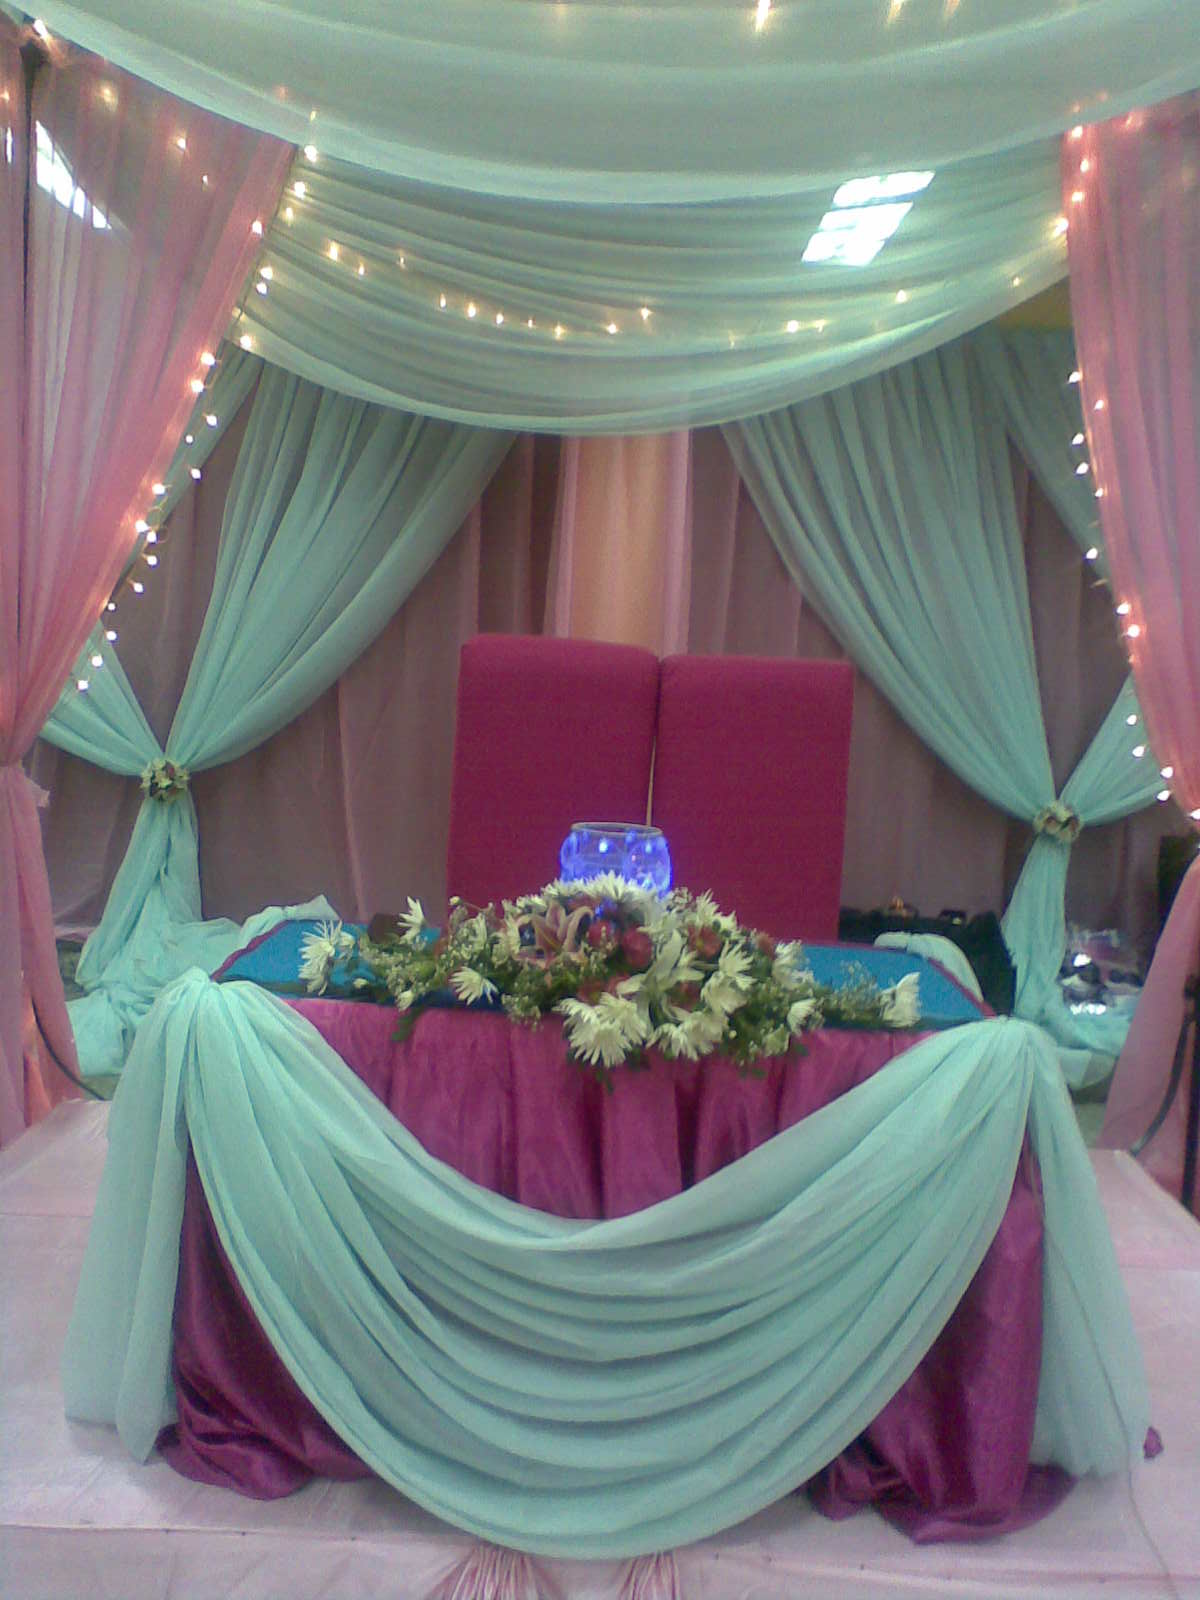 Wedding interior decorations kings event and interior decoration exquisite wedding decorations junglespirit Images